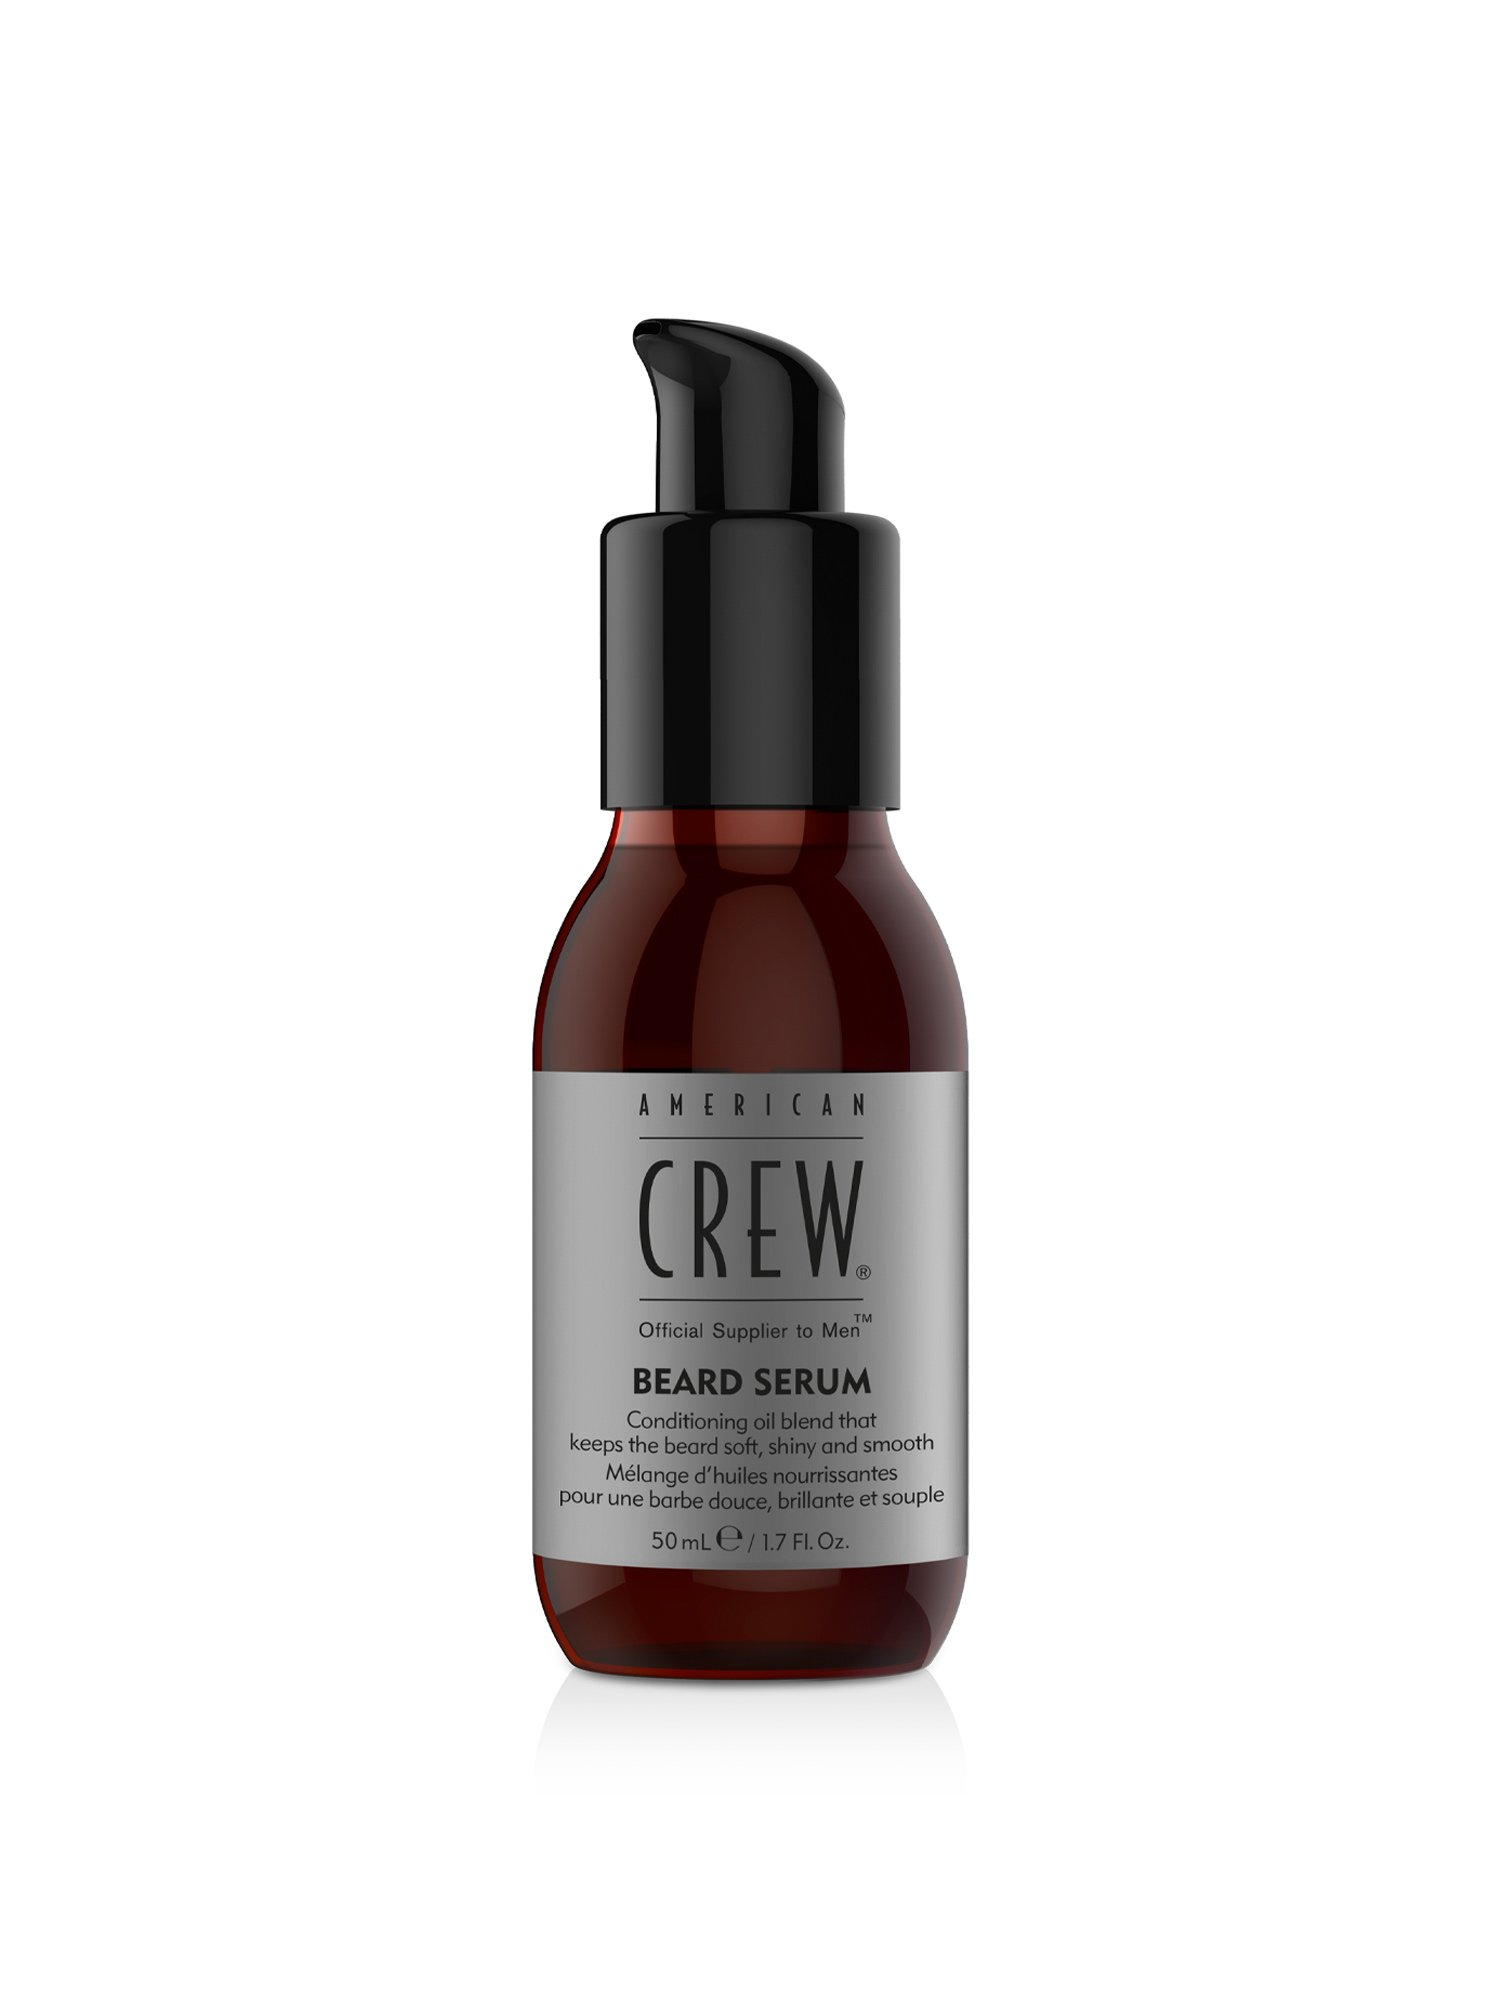 The-Mens-Emporium-American-Crew-Beard-Serum-50ml-1.jpg